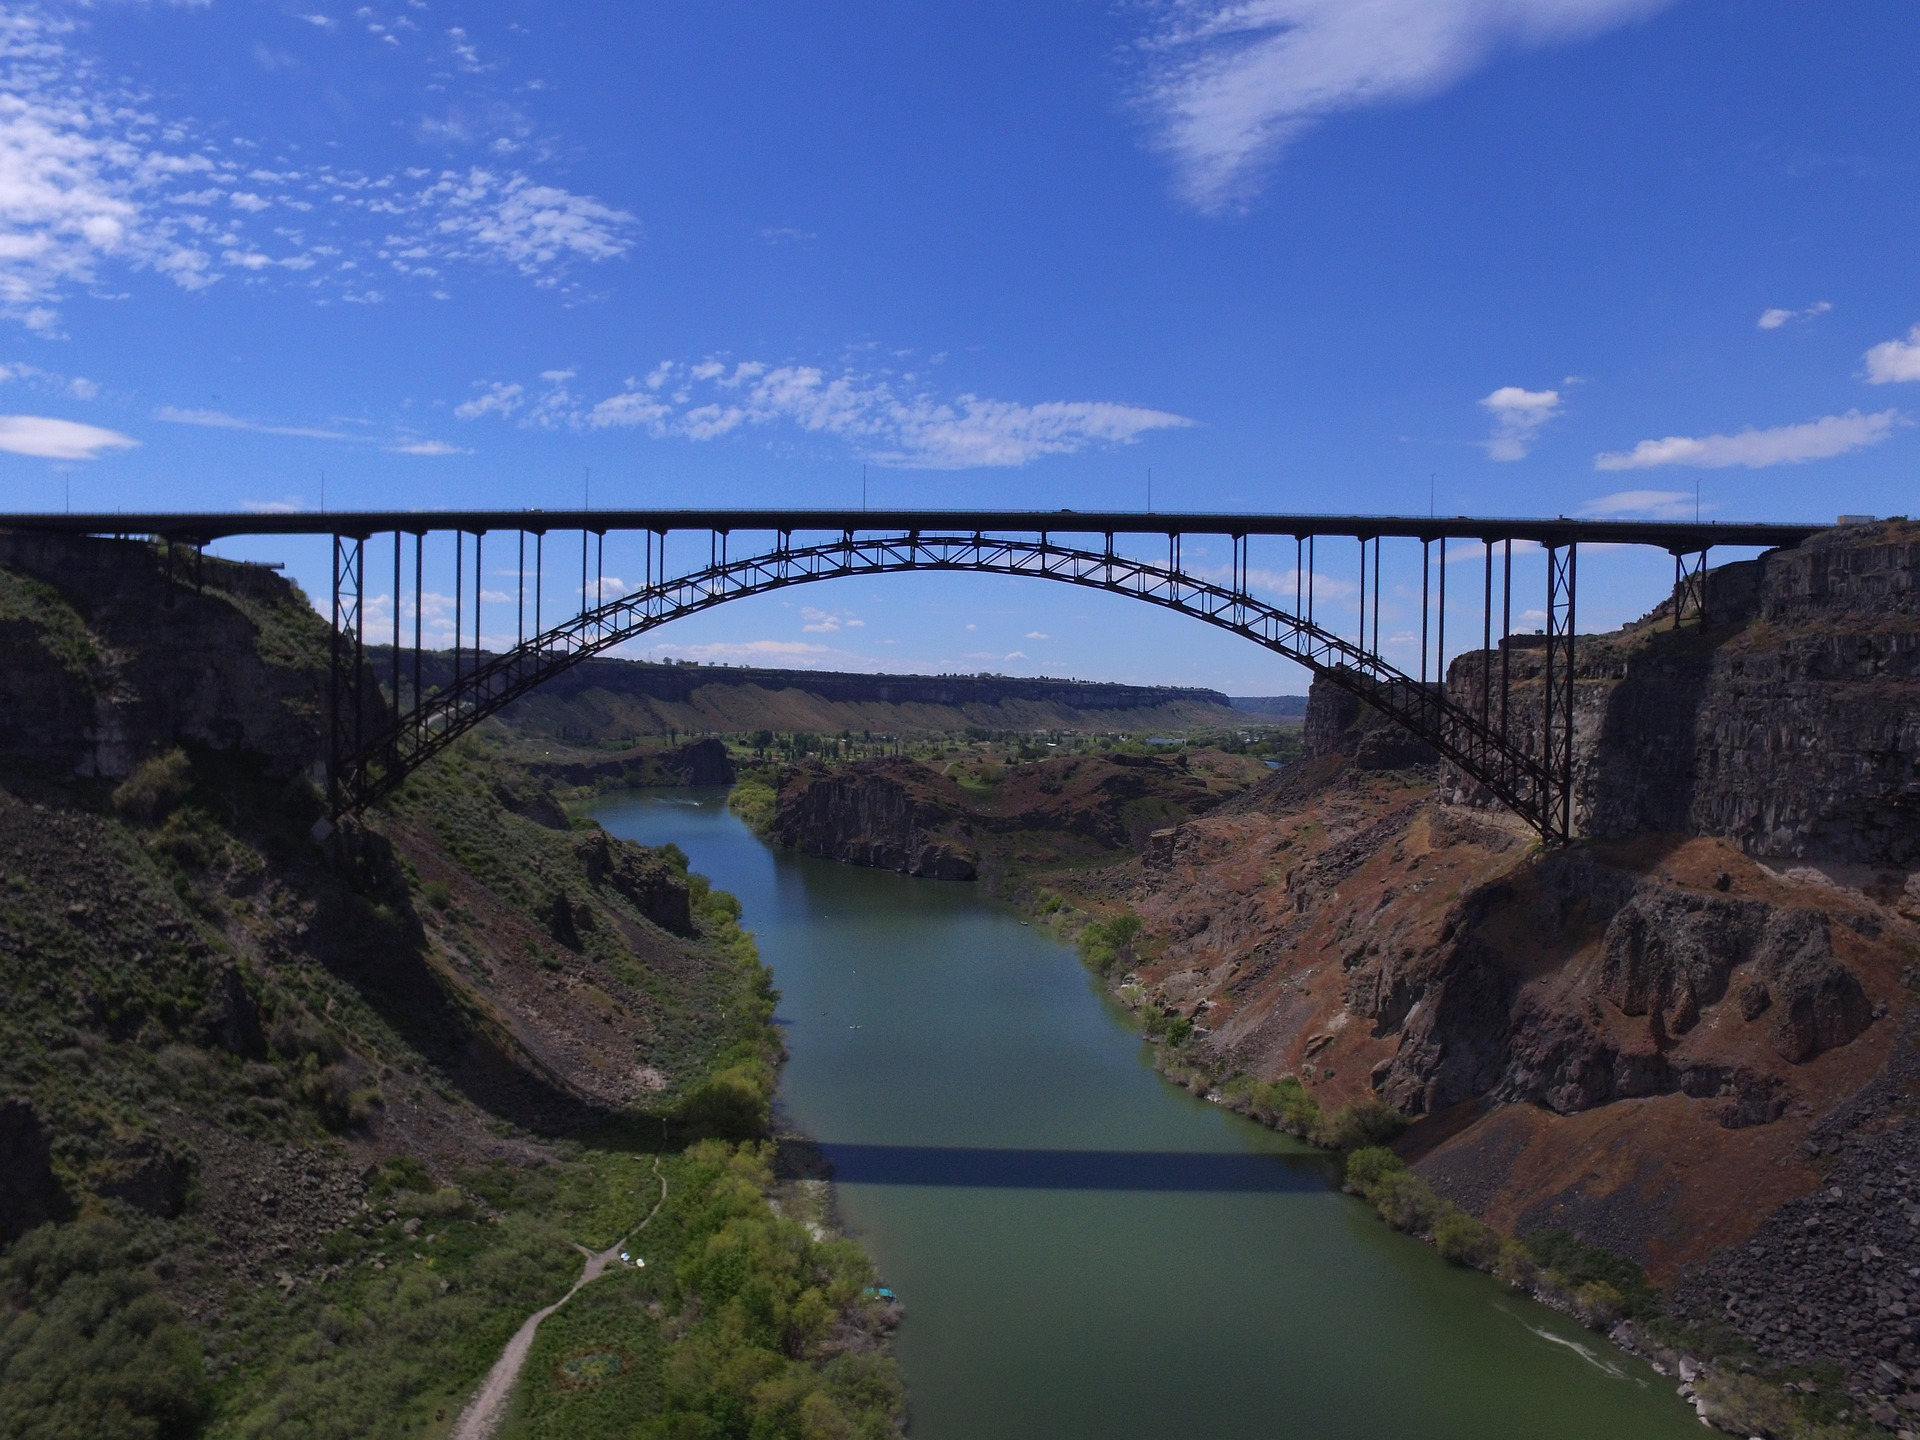 A metal bridge arching over a river gorge.